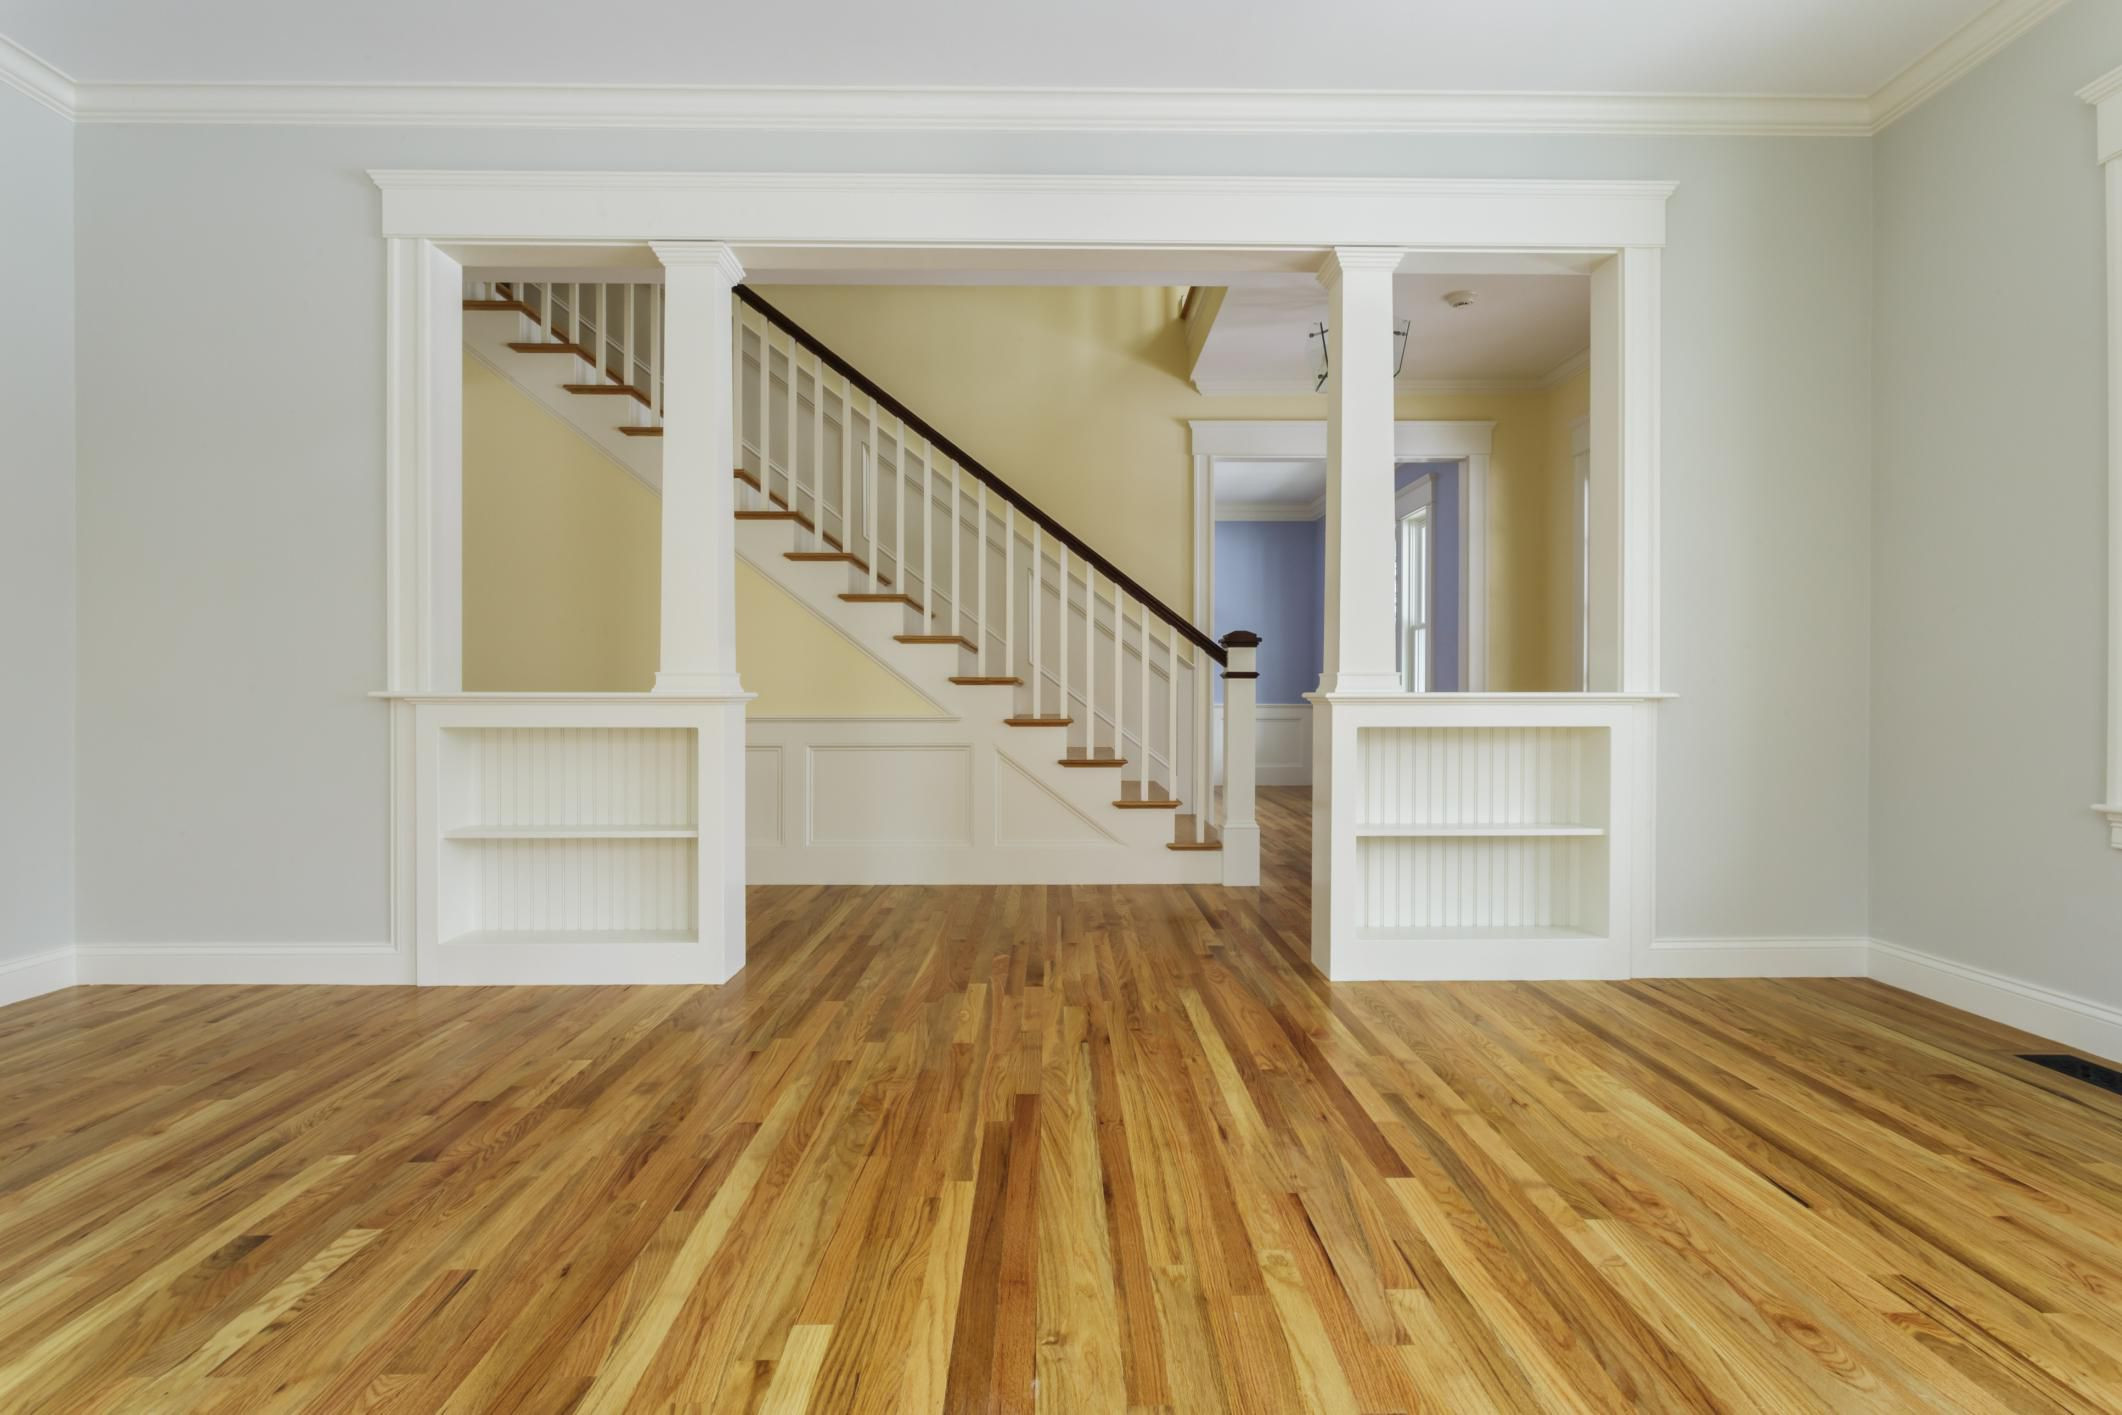 Staining Hardwood Floors Yourself Of Guide to solid Hardwood Floors within 168686571 56a49f213df78cf772834e24